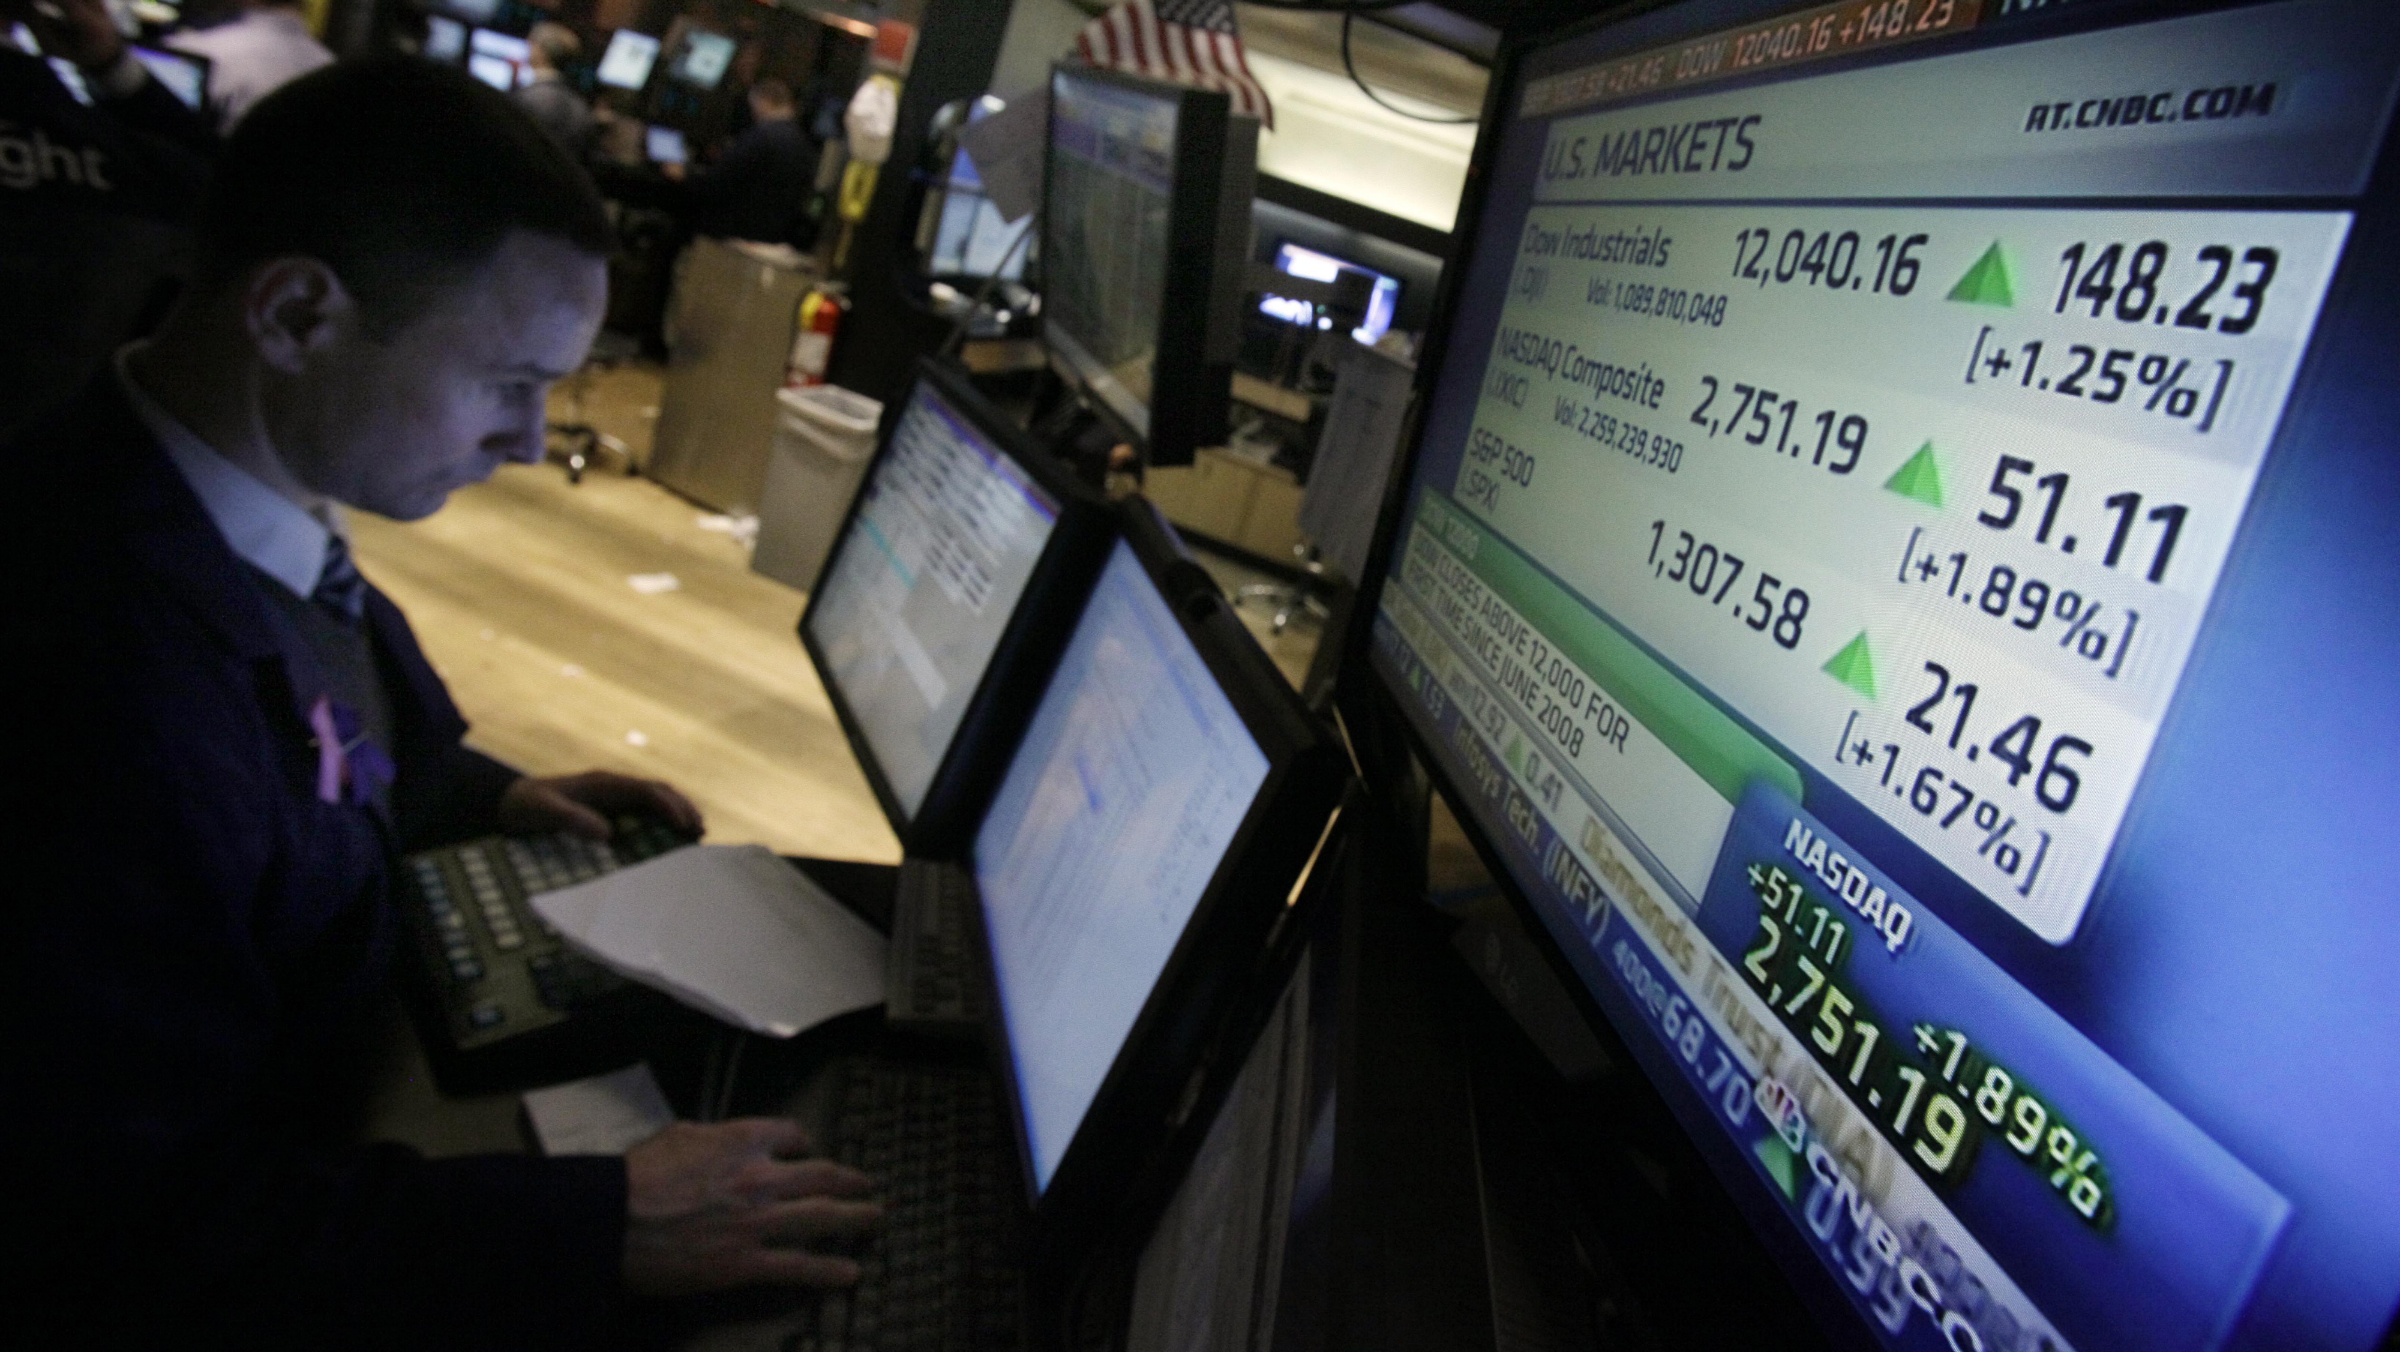 A television screen at a trading post on the floor of the New York Stock Exchange shows the closing number for the Dow Jones Industrial average at 12040.16, Tuesday, Feb. 1, 2011. The Dow closed above 12,000 Tuesday for the first time in 2 1/2 years. (AP Photo/Richard Drew)